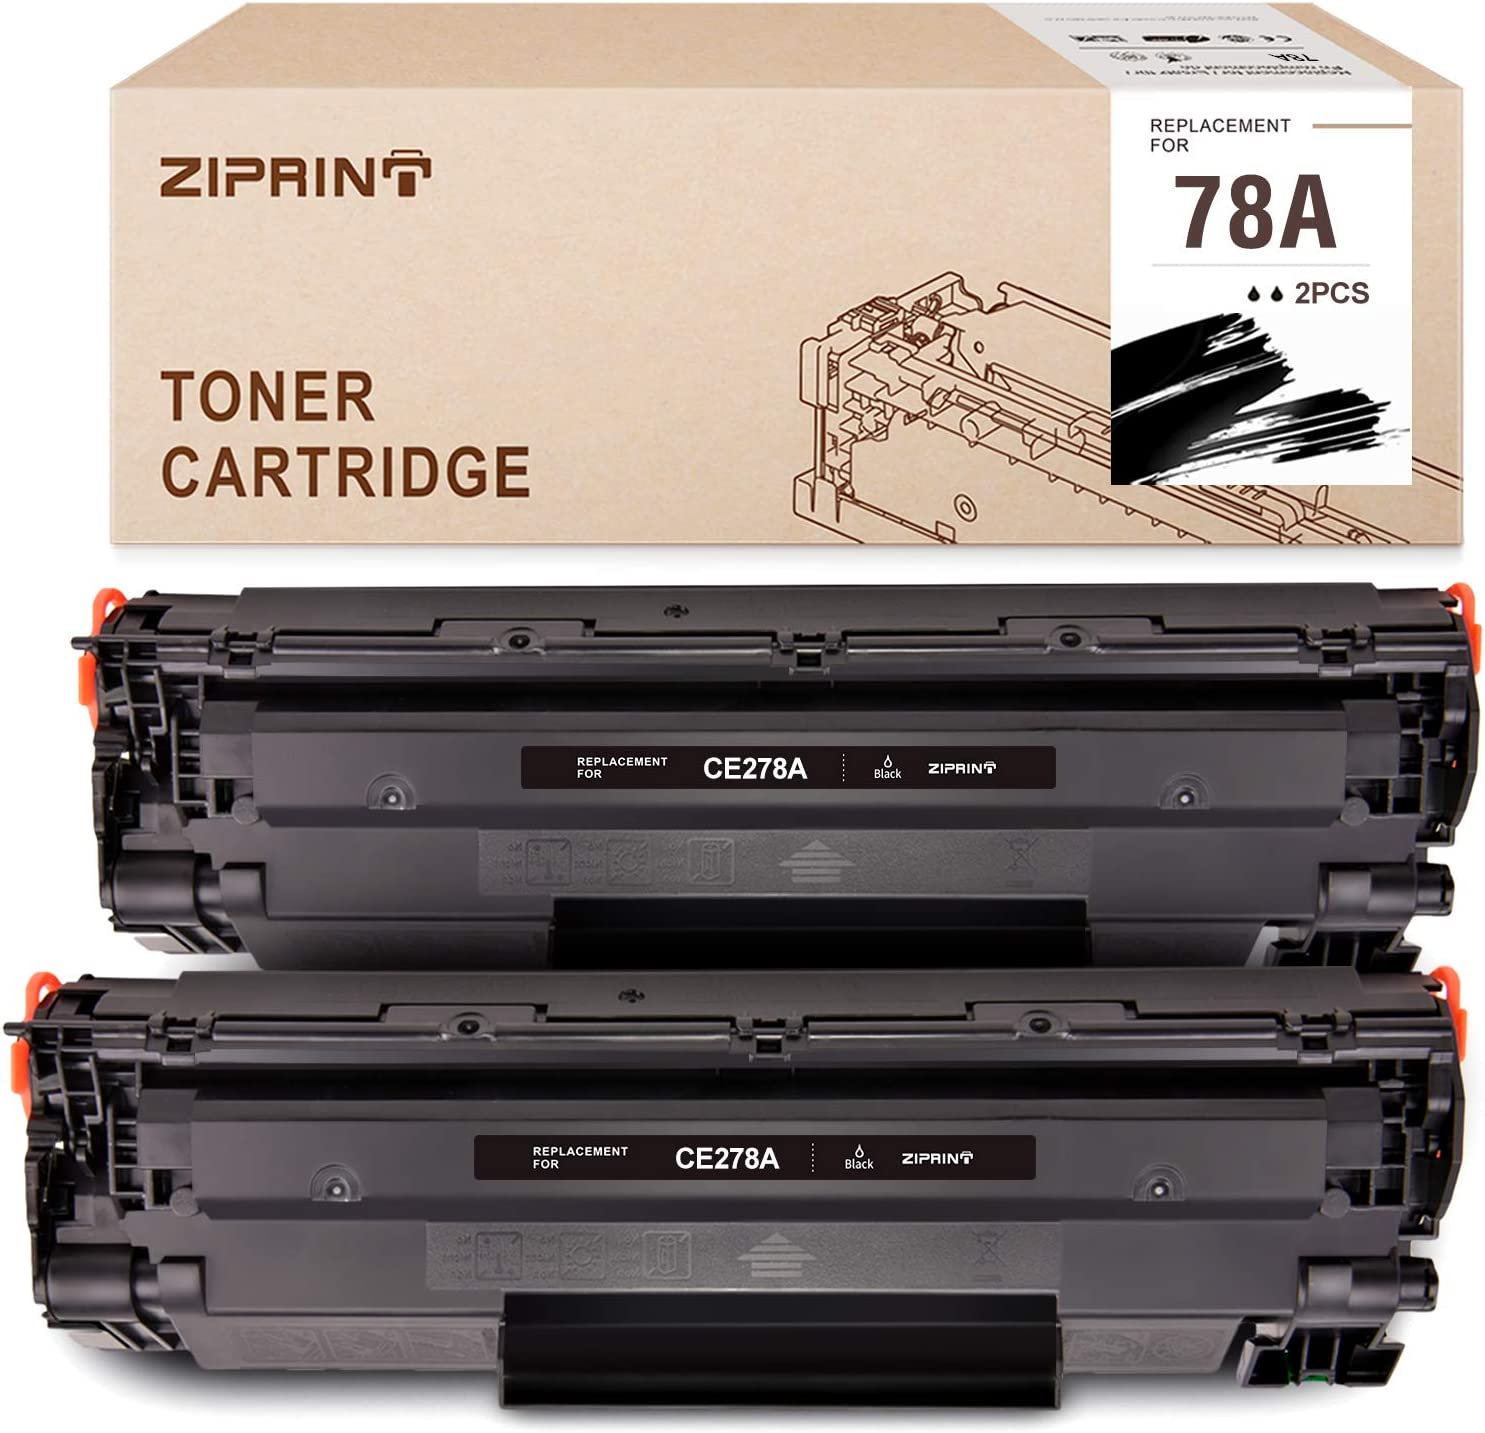 Ziprint Compatible Toner Cartridge Replacement for HP 78A CE278A Use with HP Laserjet Pro M1536dnf Pro P1606dn P1560 P1566 P1600 P1606 (Black,2-Pack)